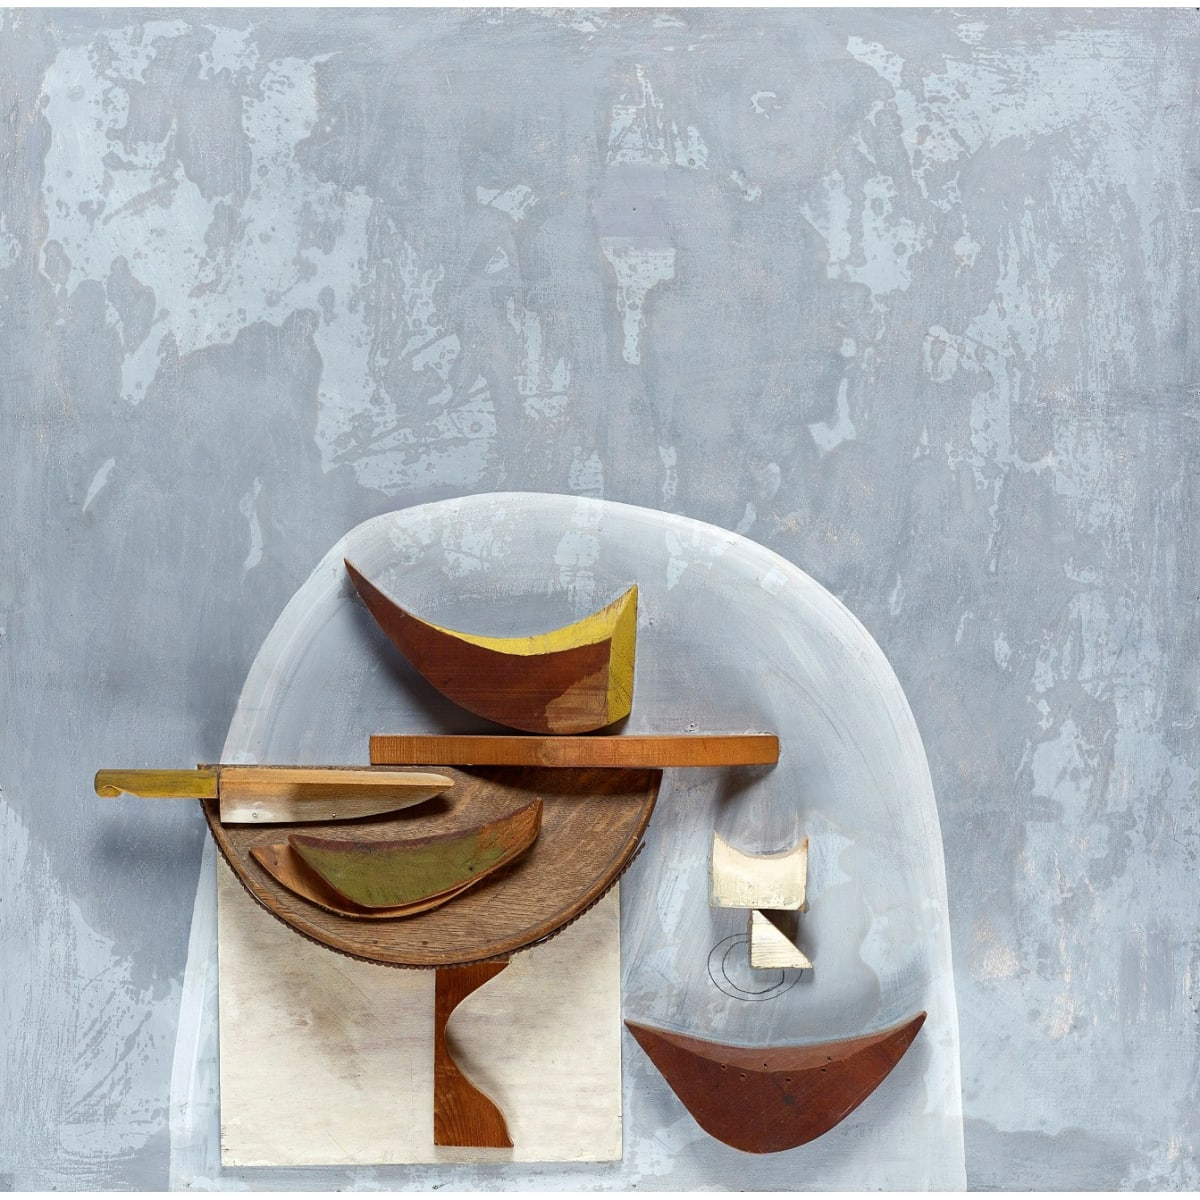 Alberto Morrocco Still Life with Melon, c.1968 signed and titled on label verso wood relief and gesso paint on board 36 1/2 x 36 inches